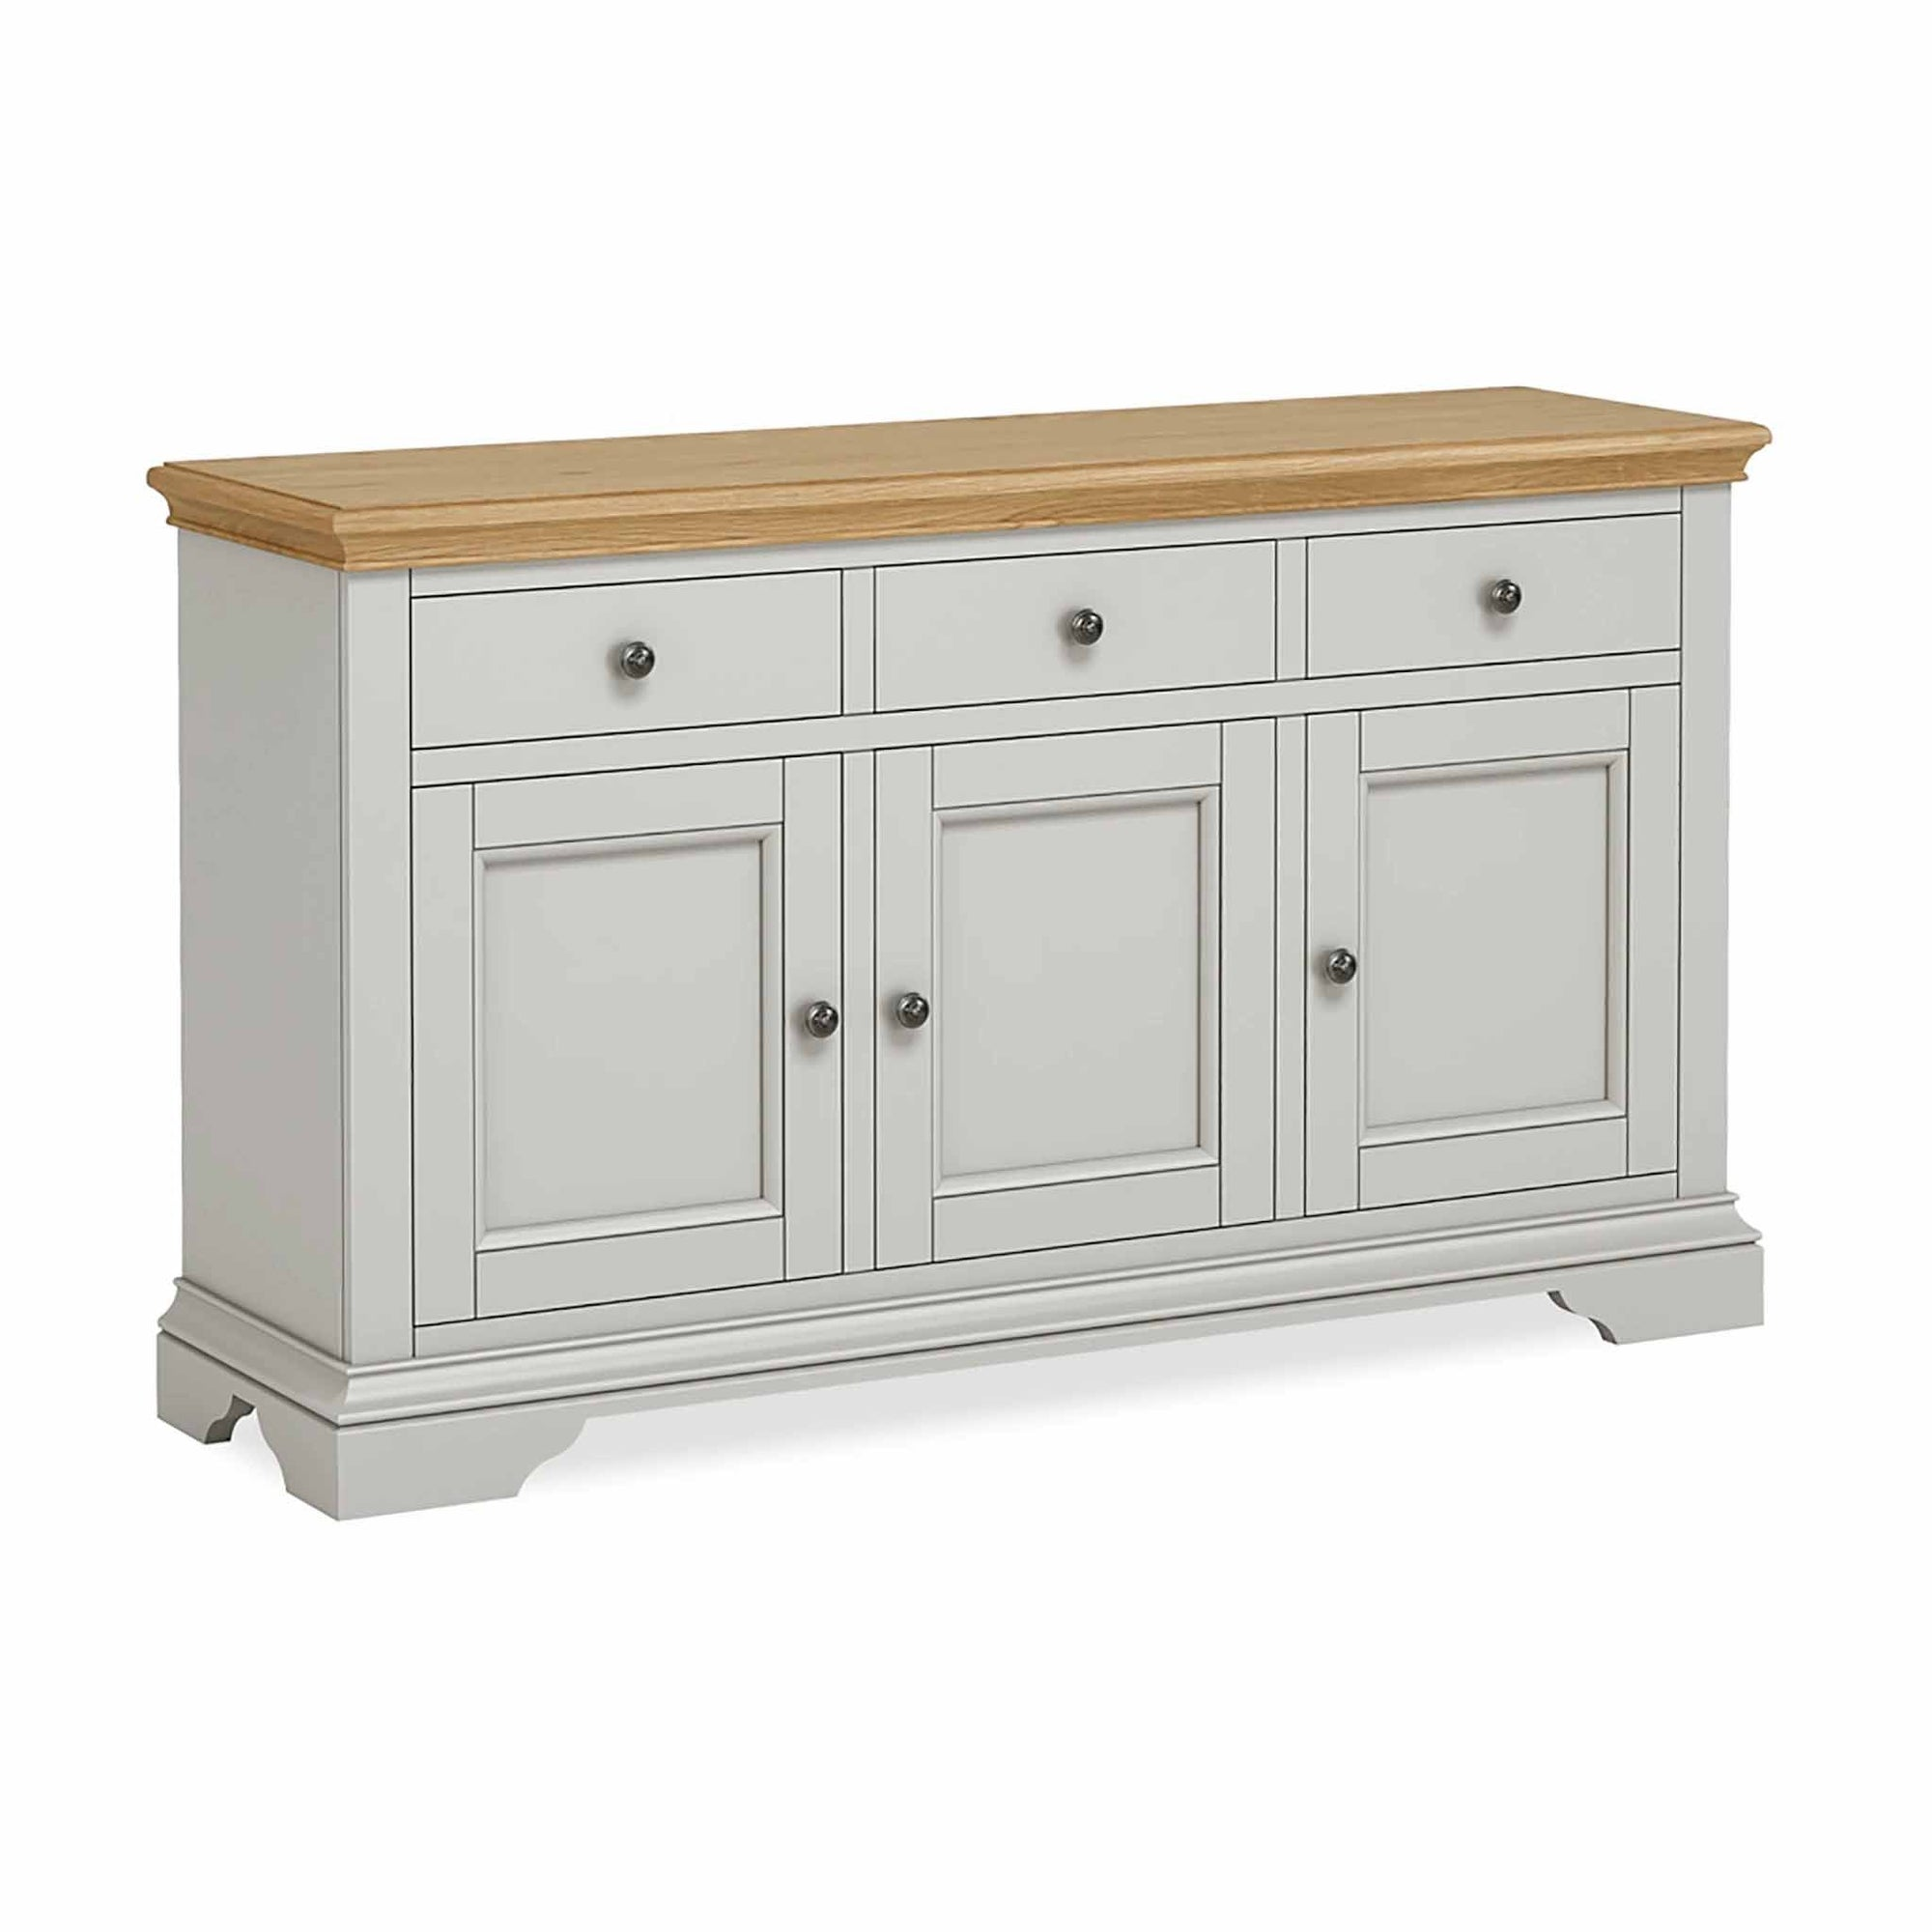 Normandy Grey Large Sideboard by Roseland Furniture